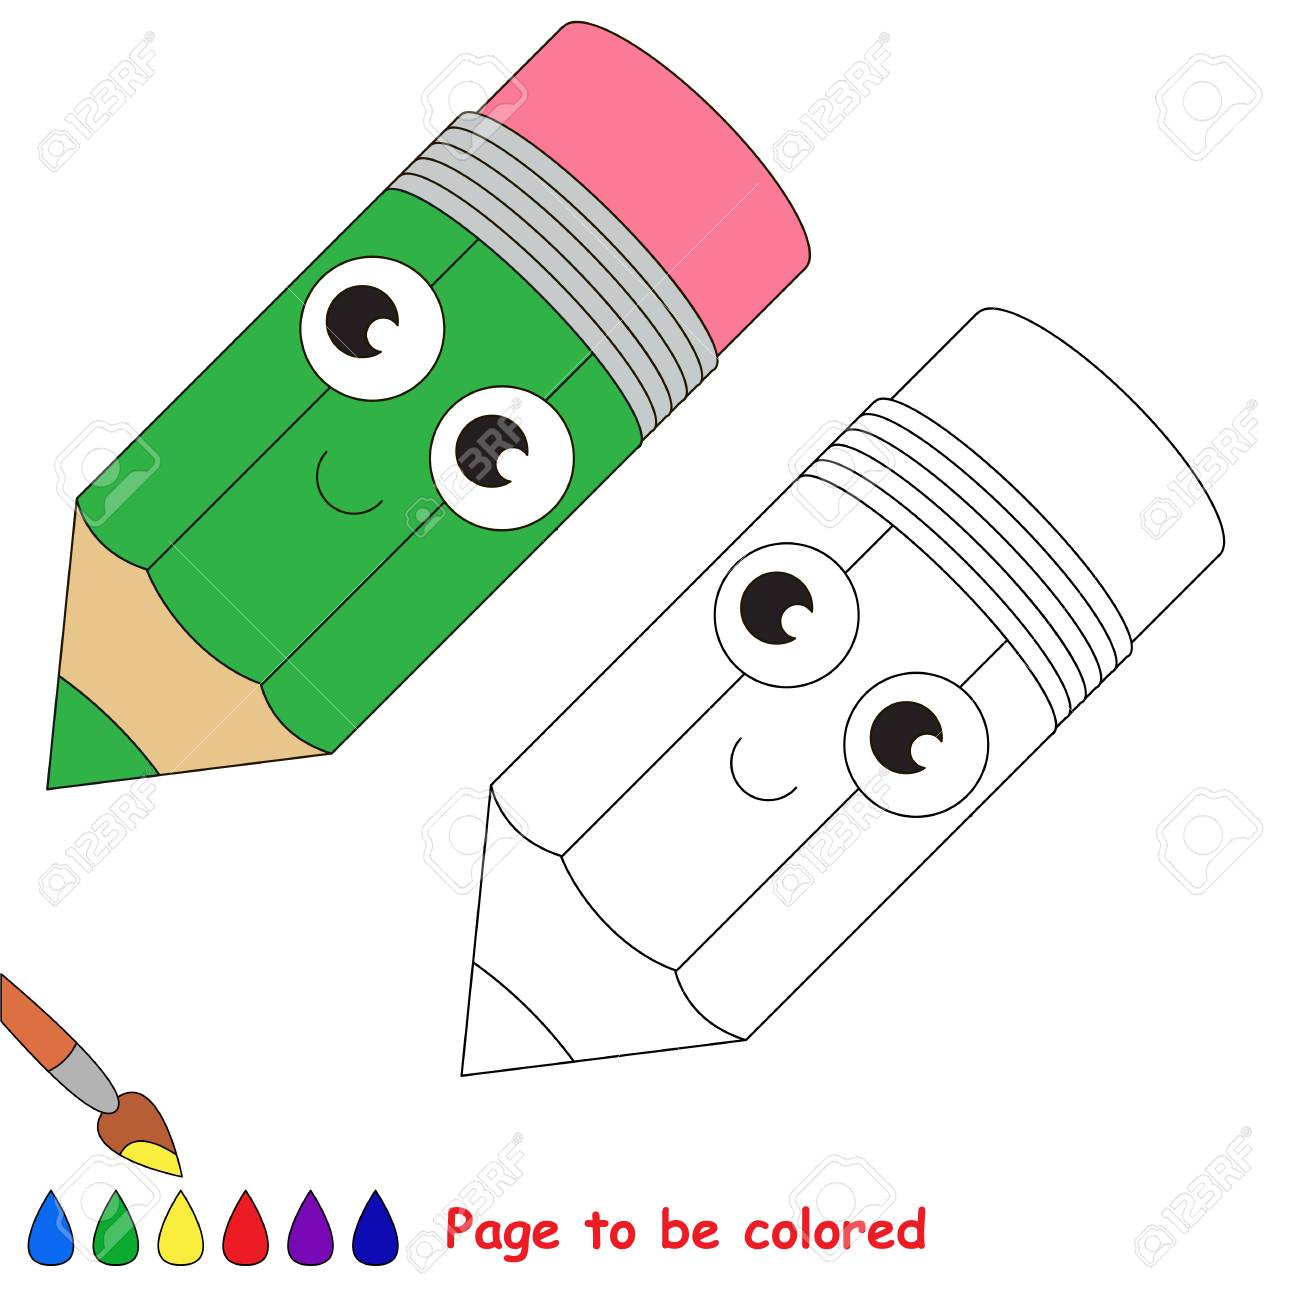 Funny Beautiful Green Pencil To Be Colored, The Coloring Book ...